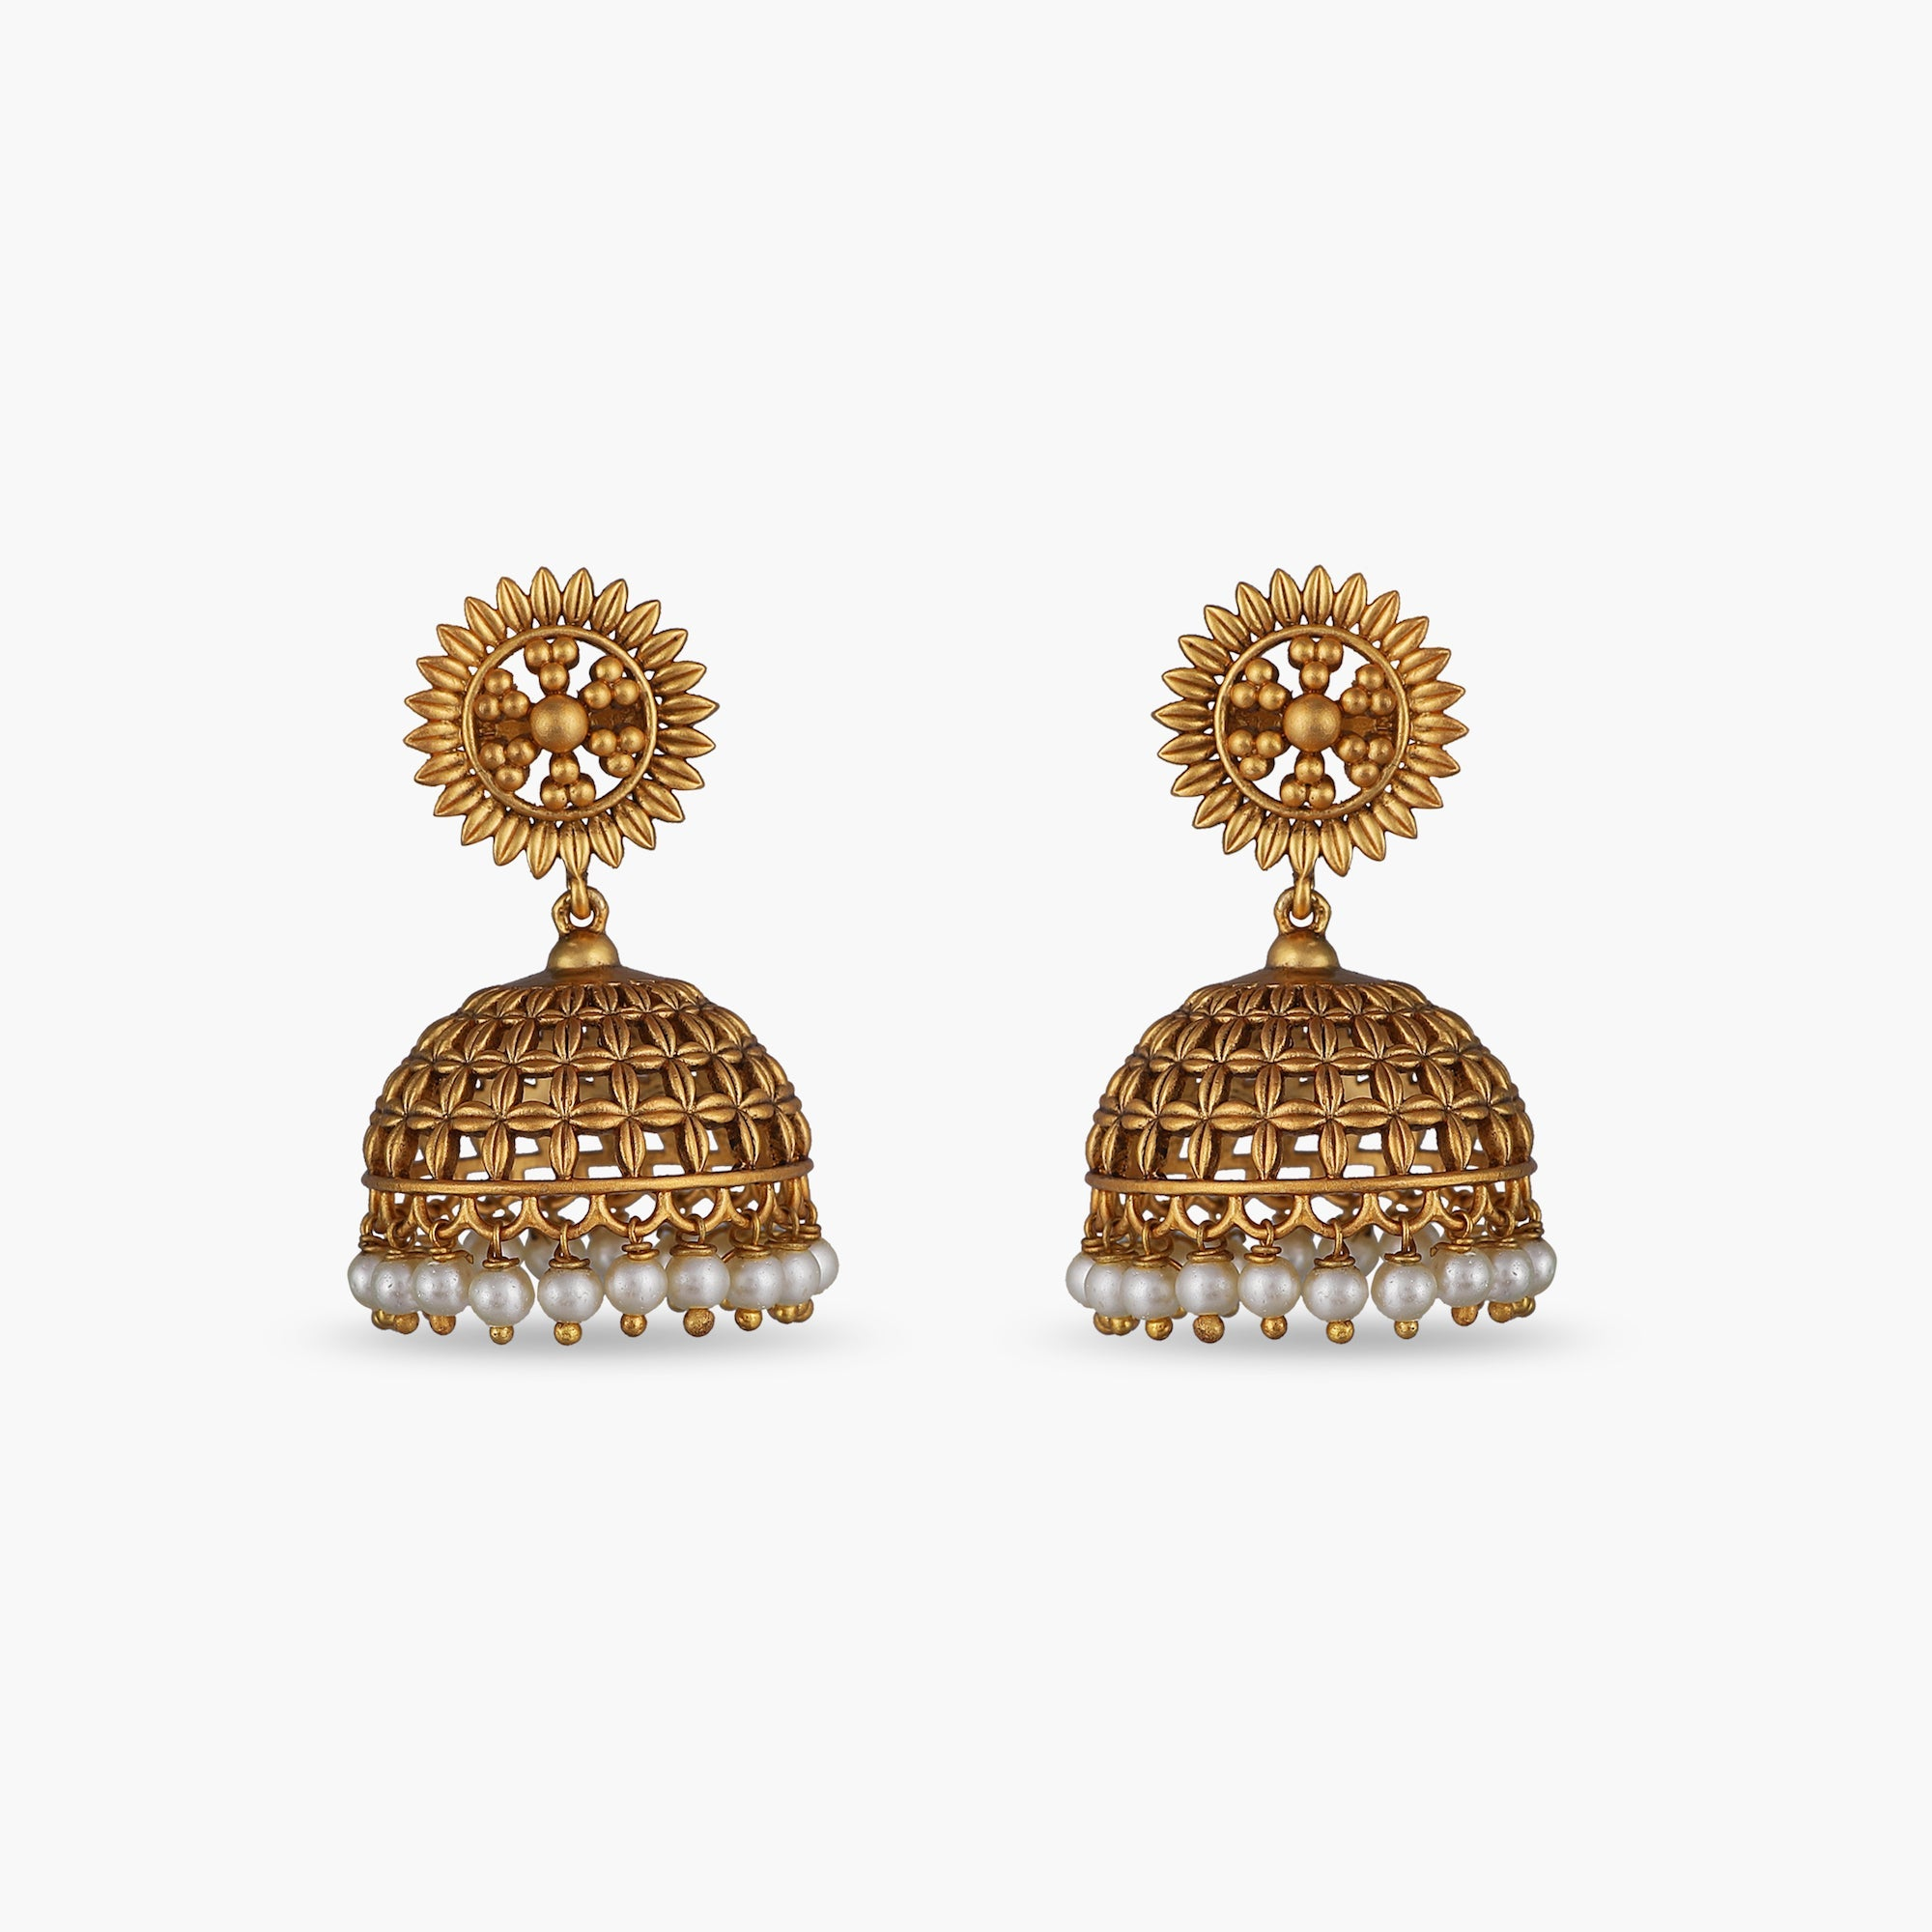 Girja Antique Jhumka Earrings